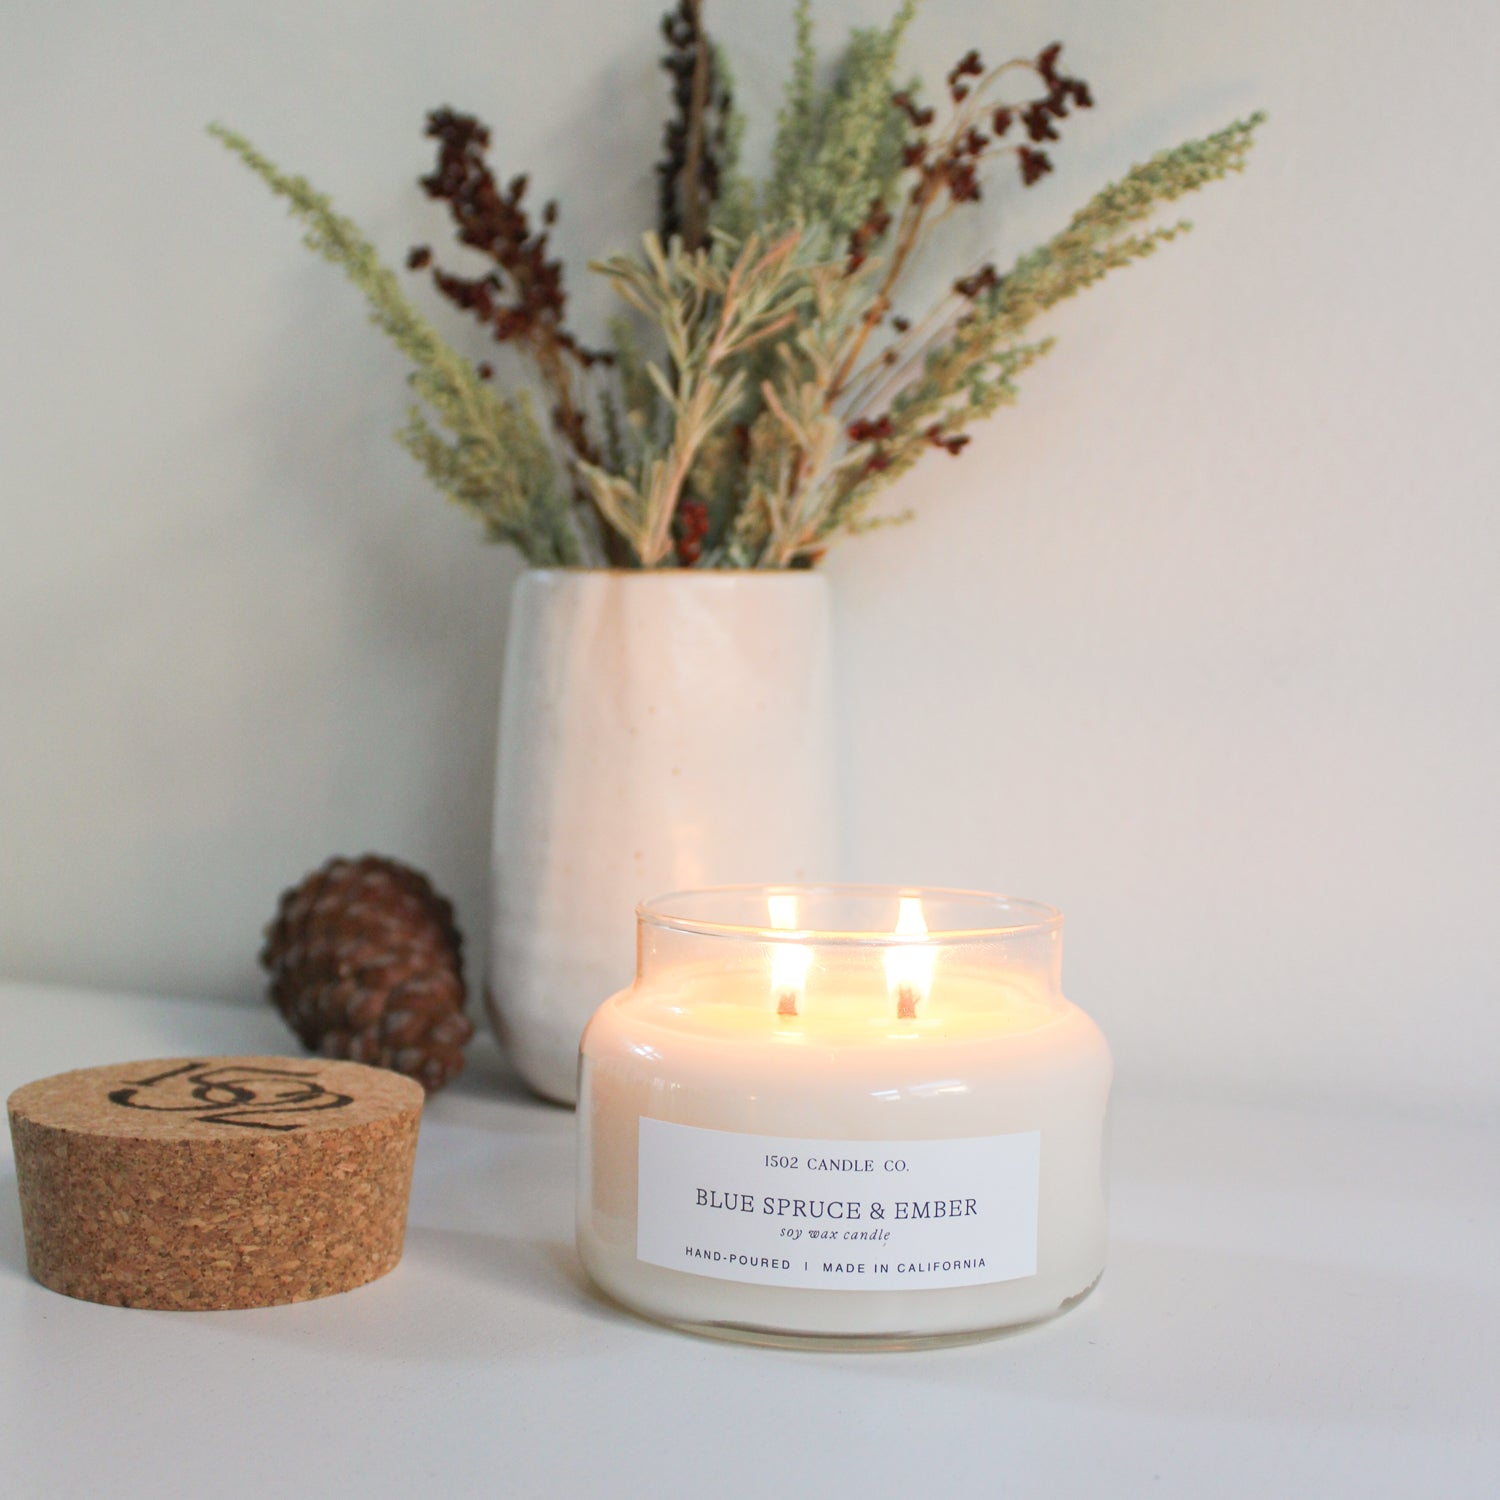 Blue spruce and ember candle for the holidays.